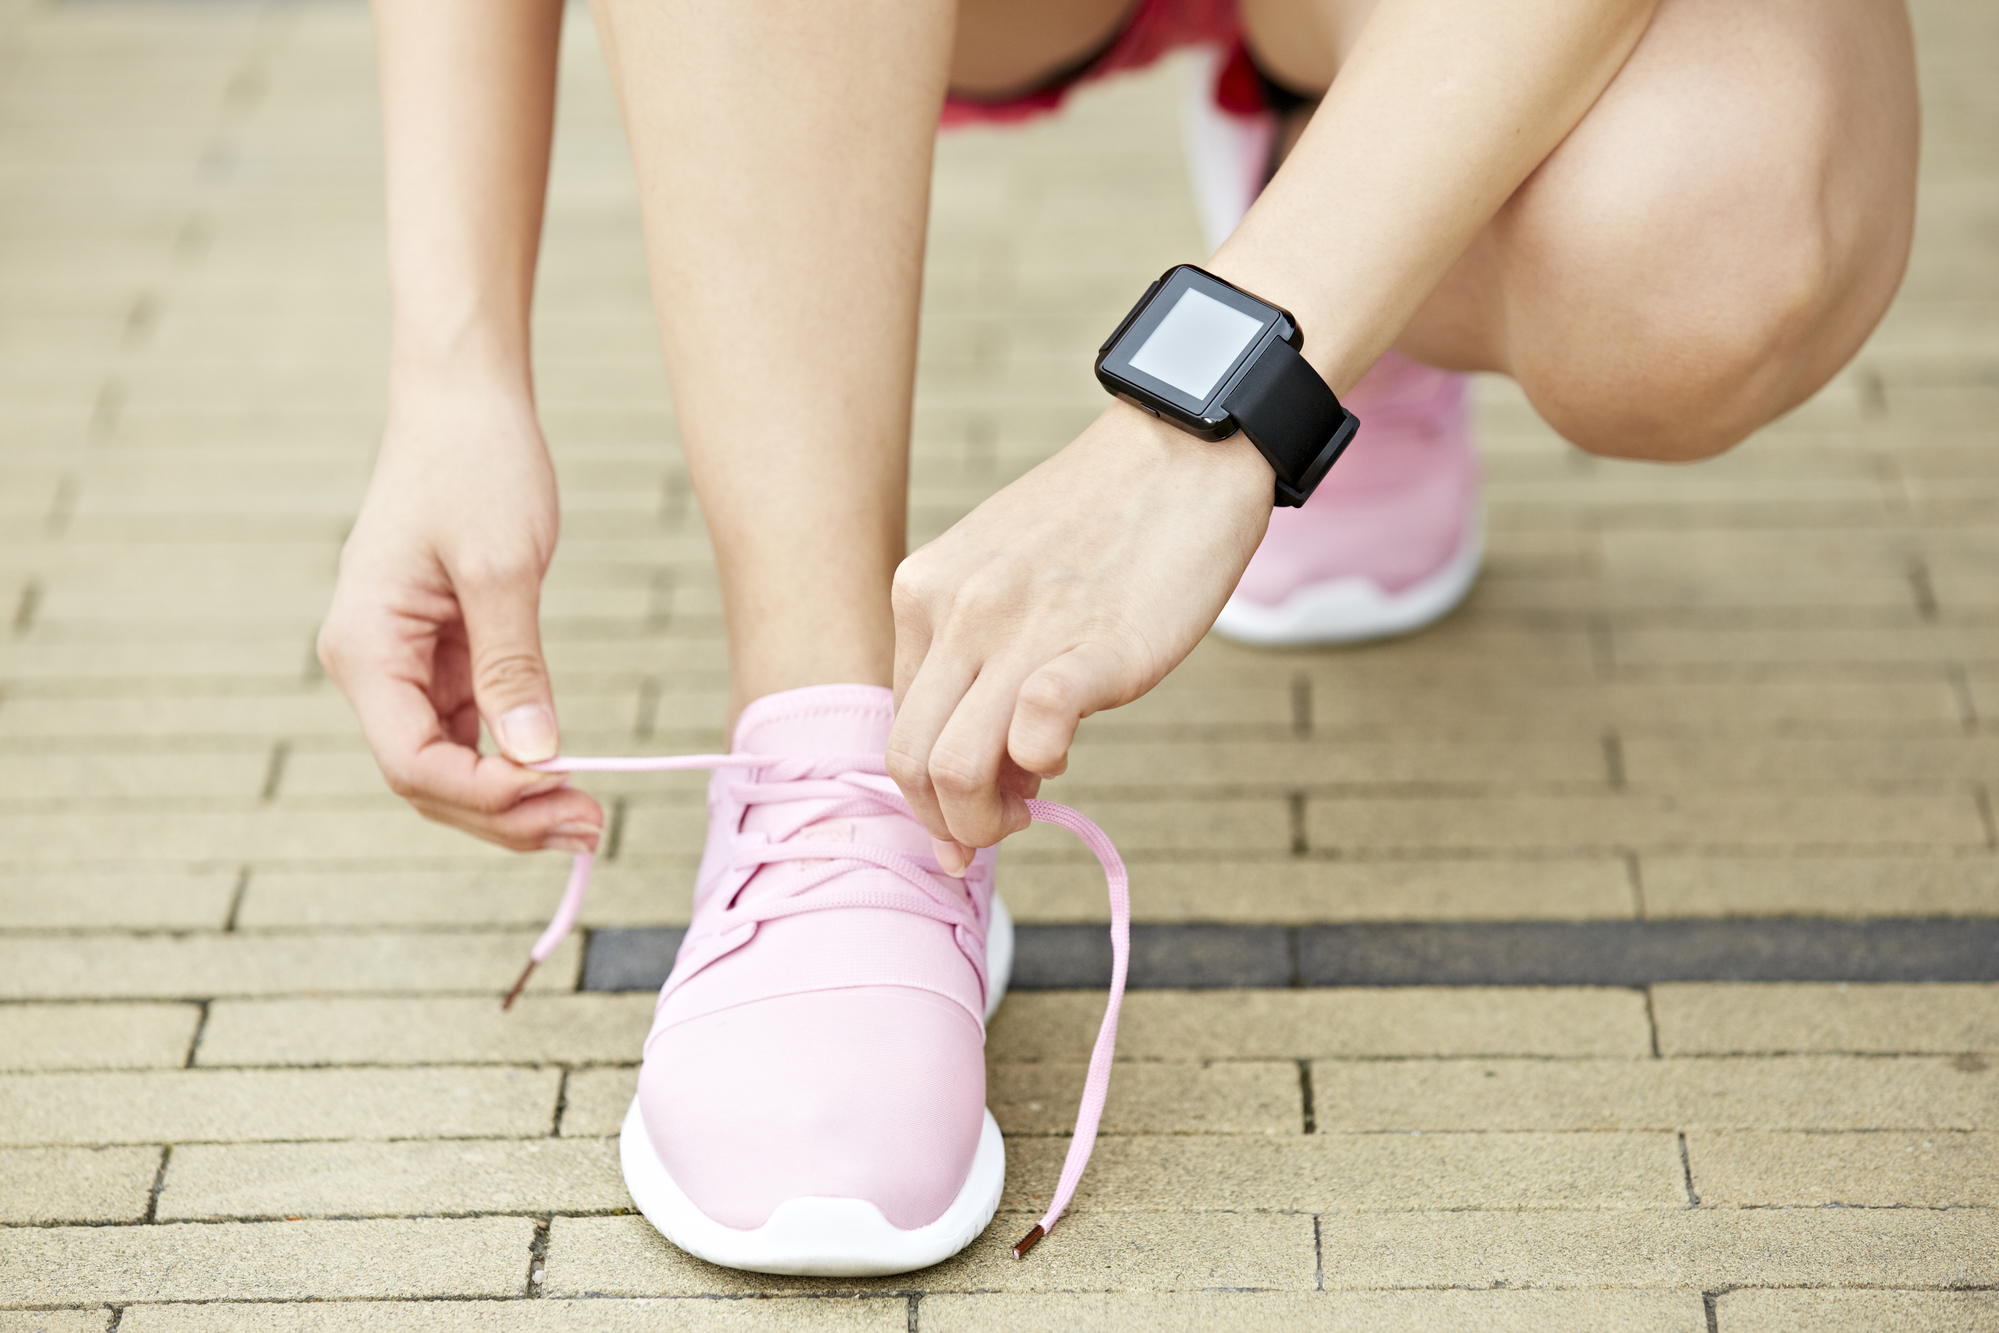 Scientists have developed a new material that enables biosensors greater breathability, and say its potential isn't limited to the wearables we use today